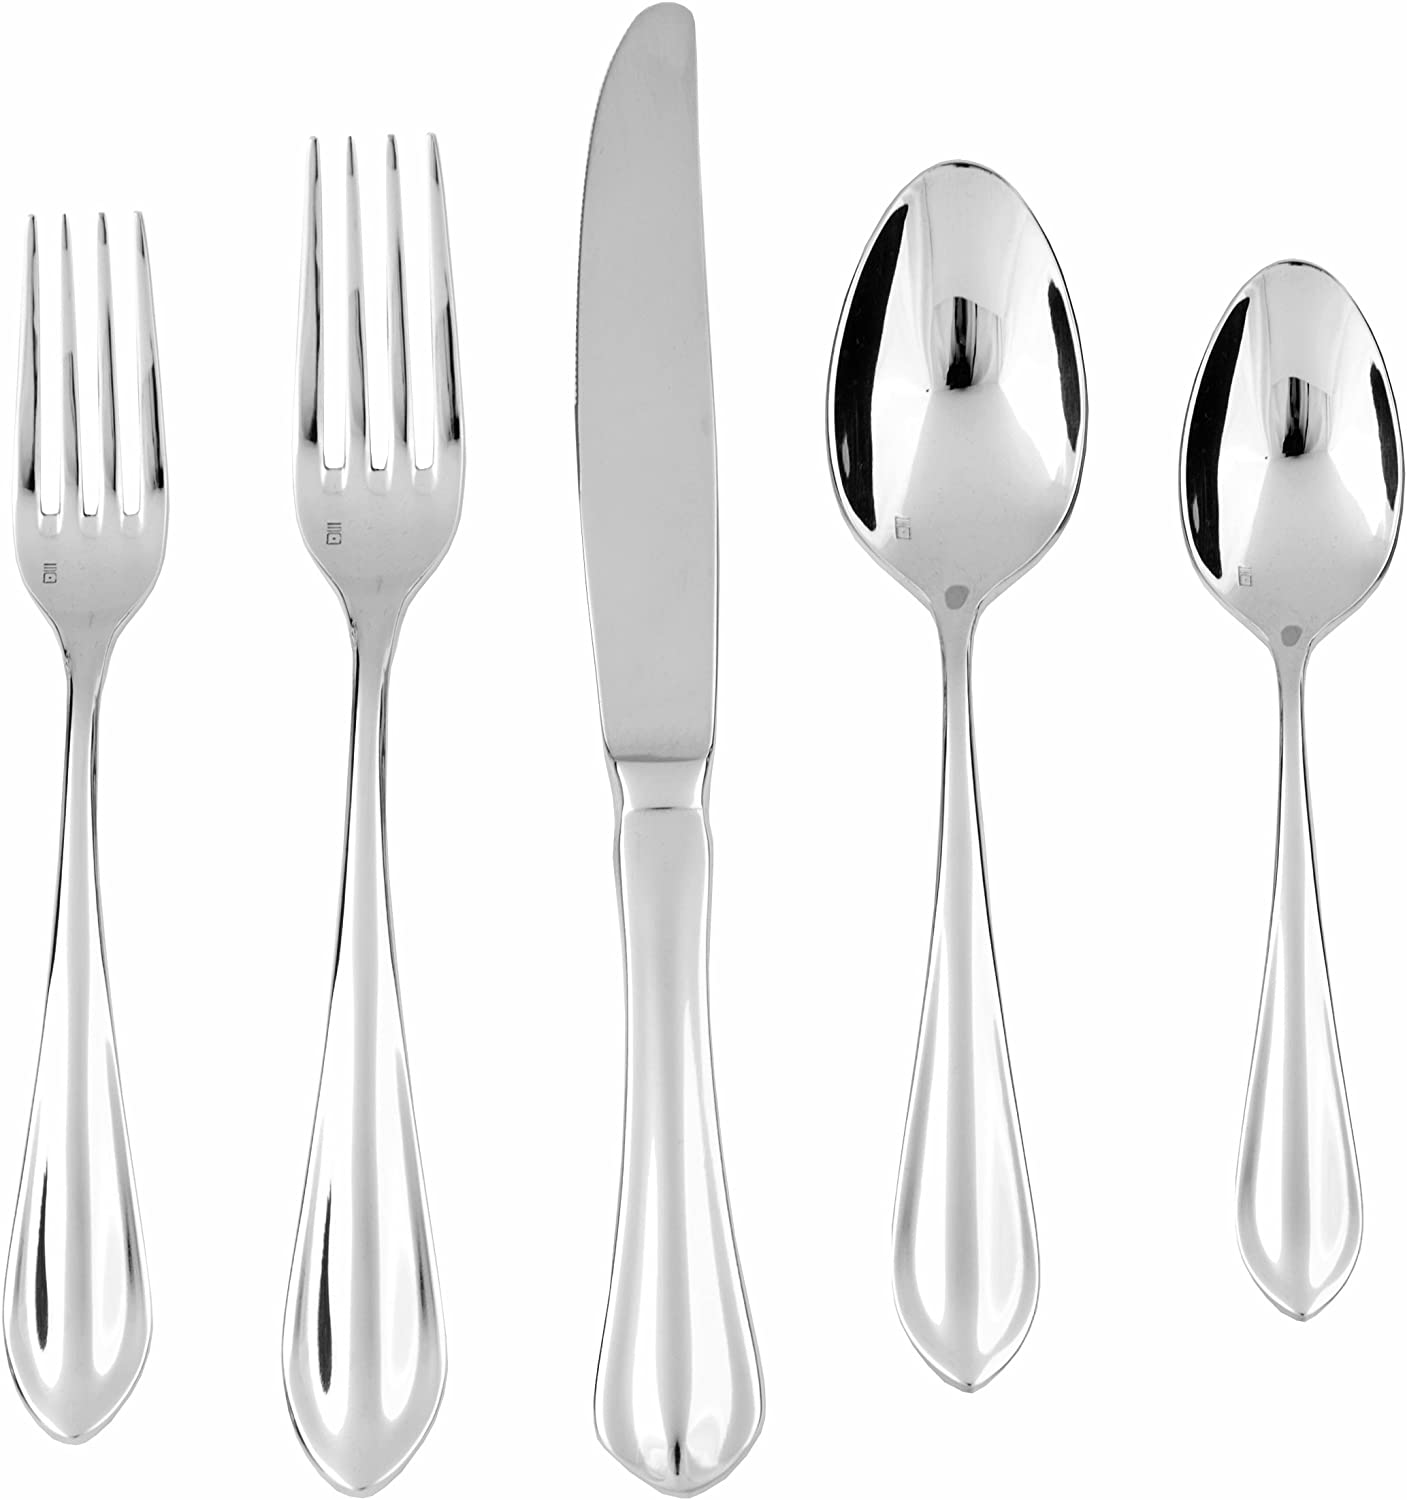 Fortessa Bistro 18 10 Stainless Steel Flatware Set, Service for 1, 5-Piece Forge 5-Piece Silver